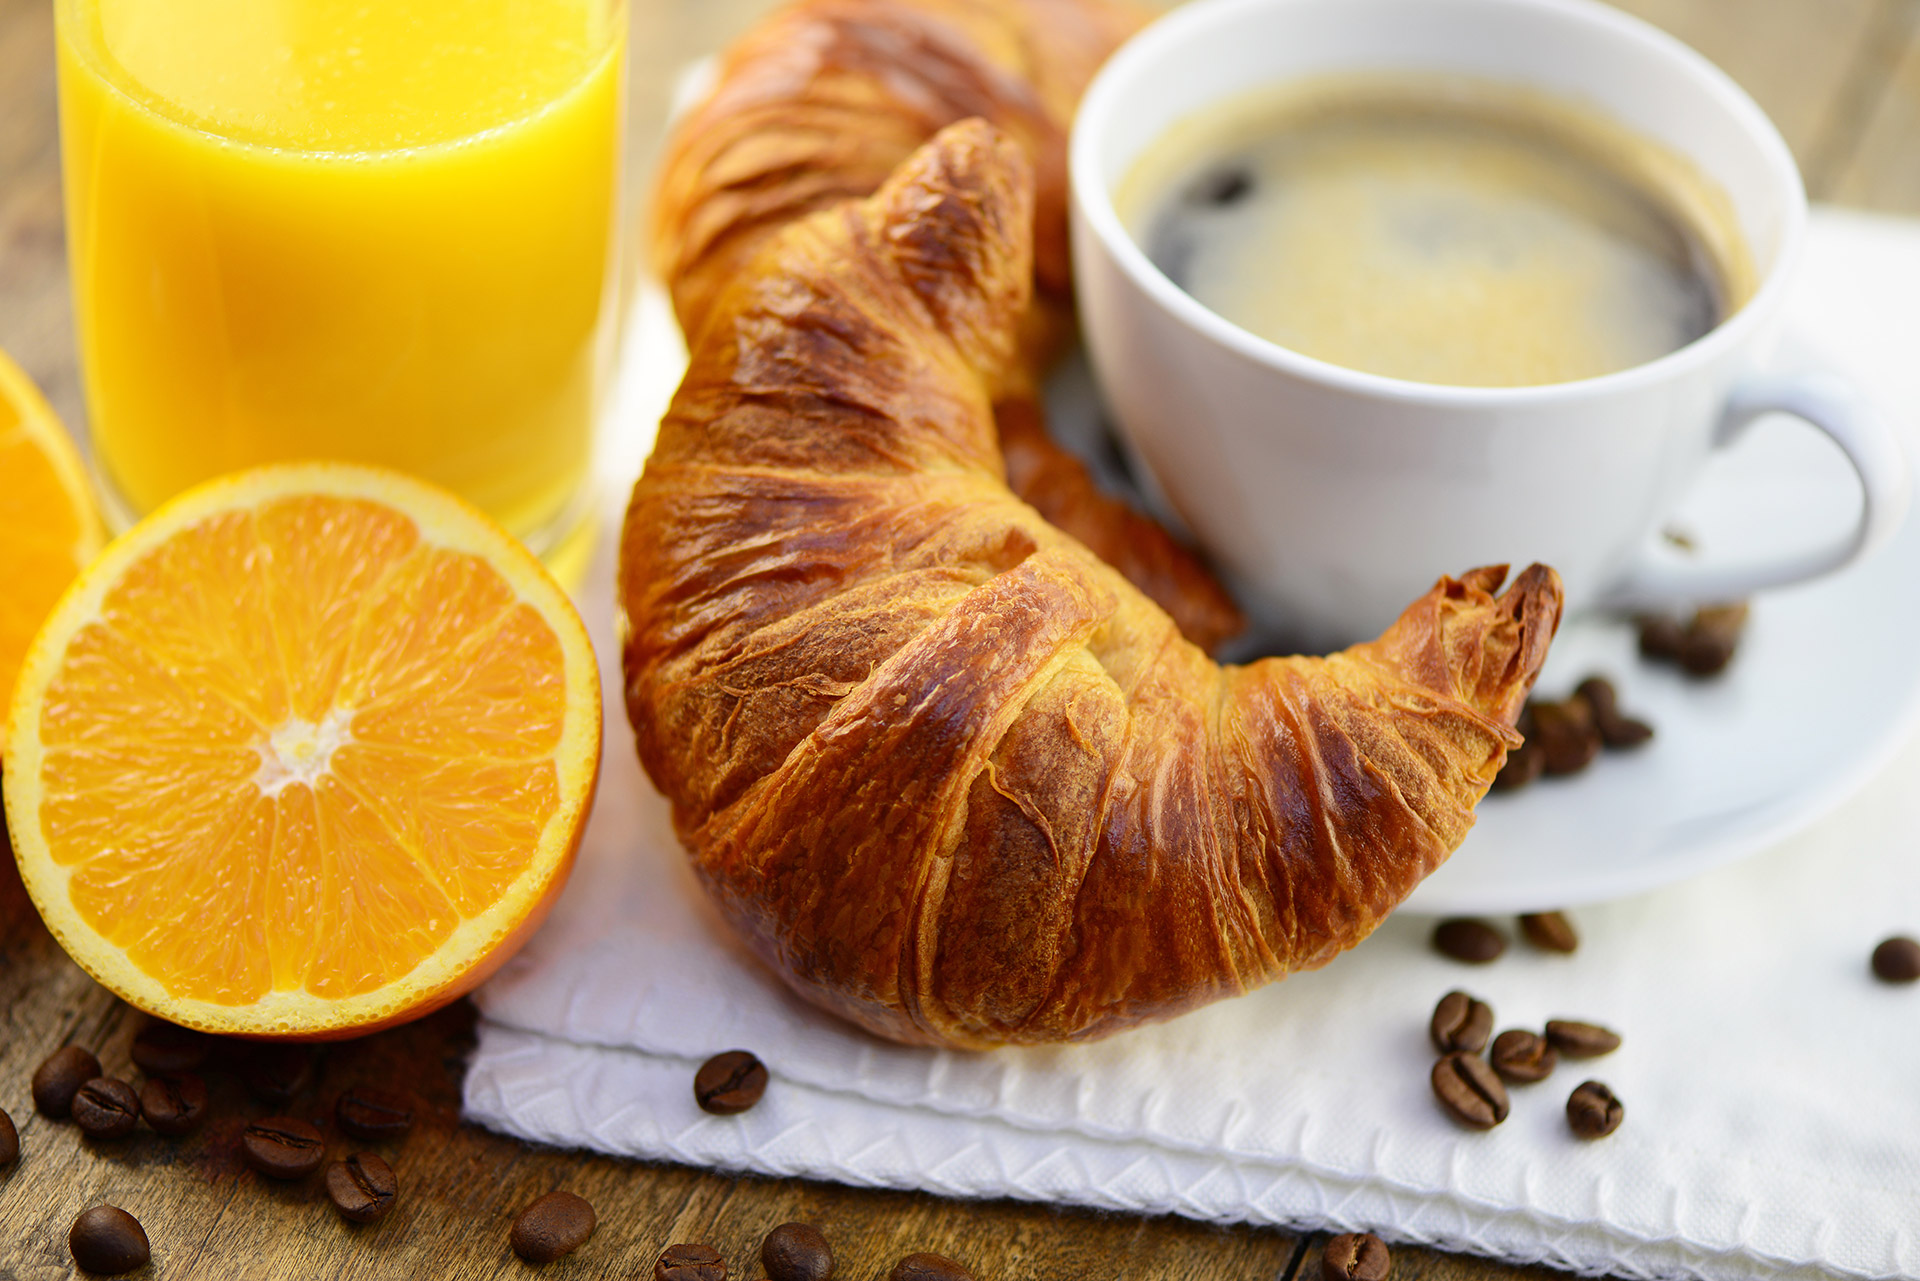 Best Western Bretagne Montparnasse express breakfast to go